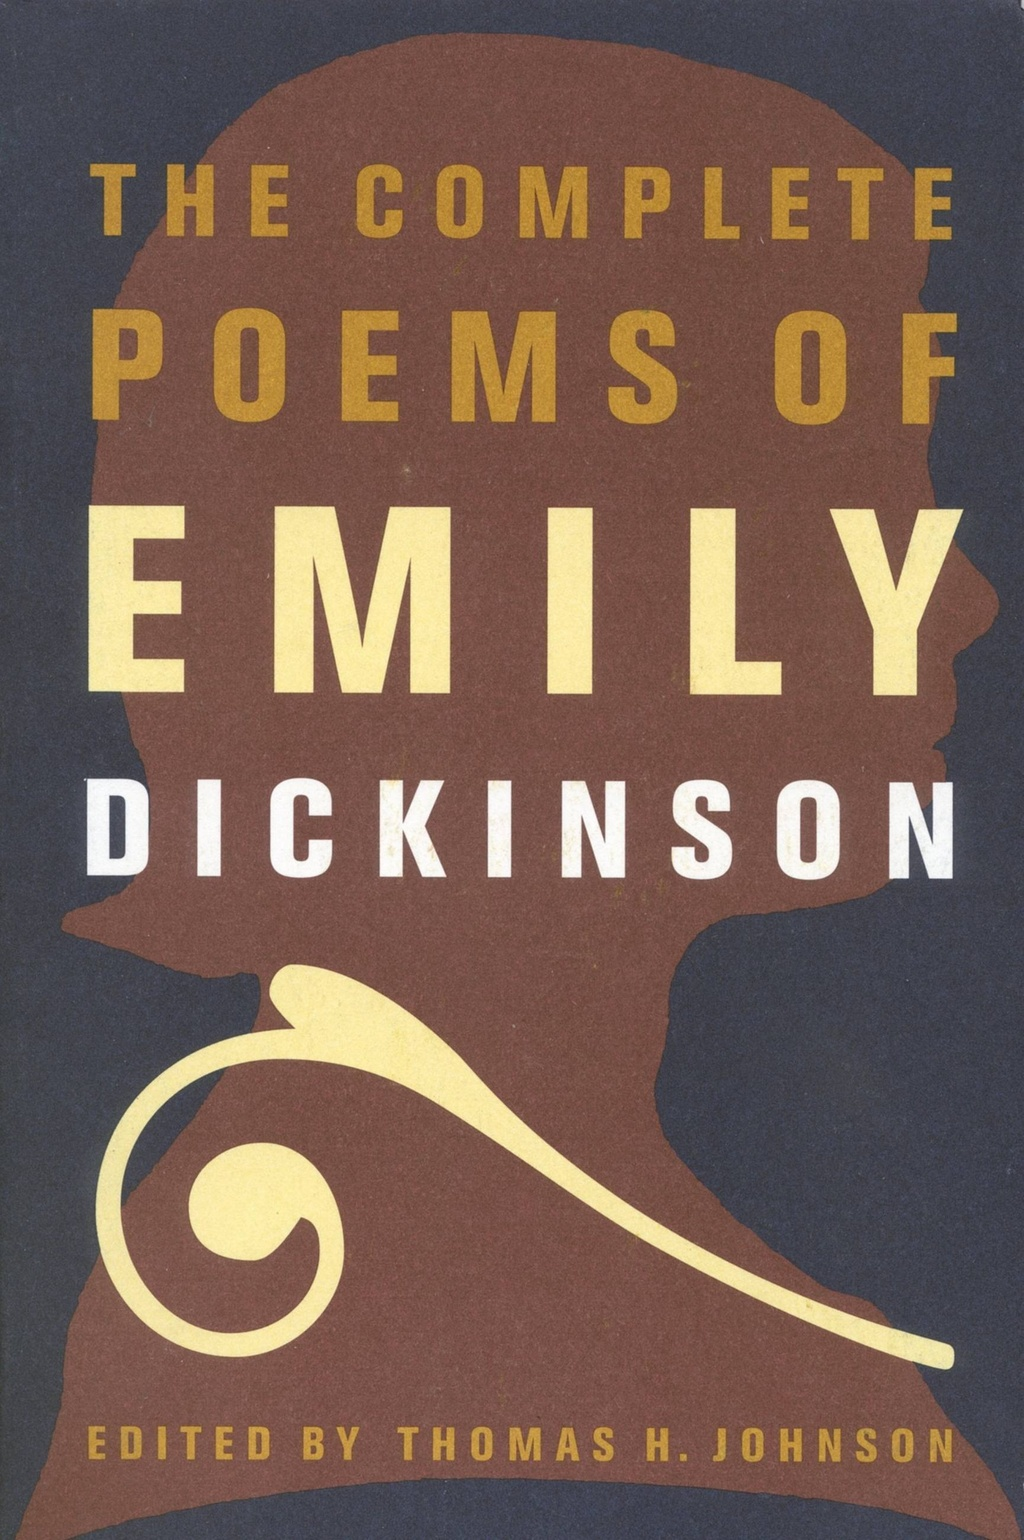 the complete poems of emily dickinson acirc a w defined art the complete poems of emily dickinson acirc a w defined art culture by mahvash mossaed